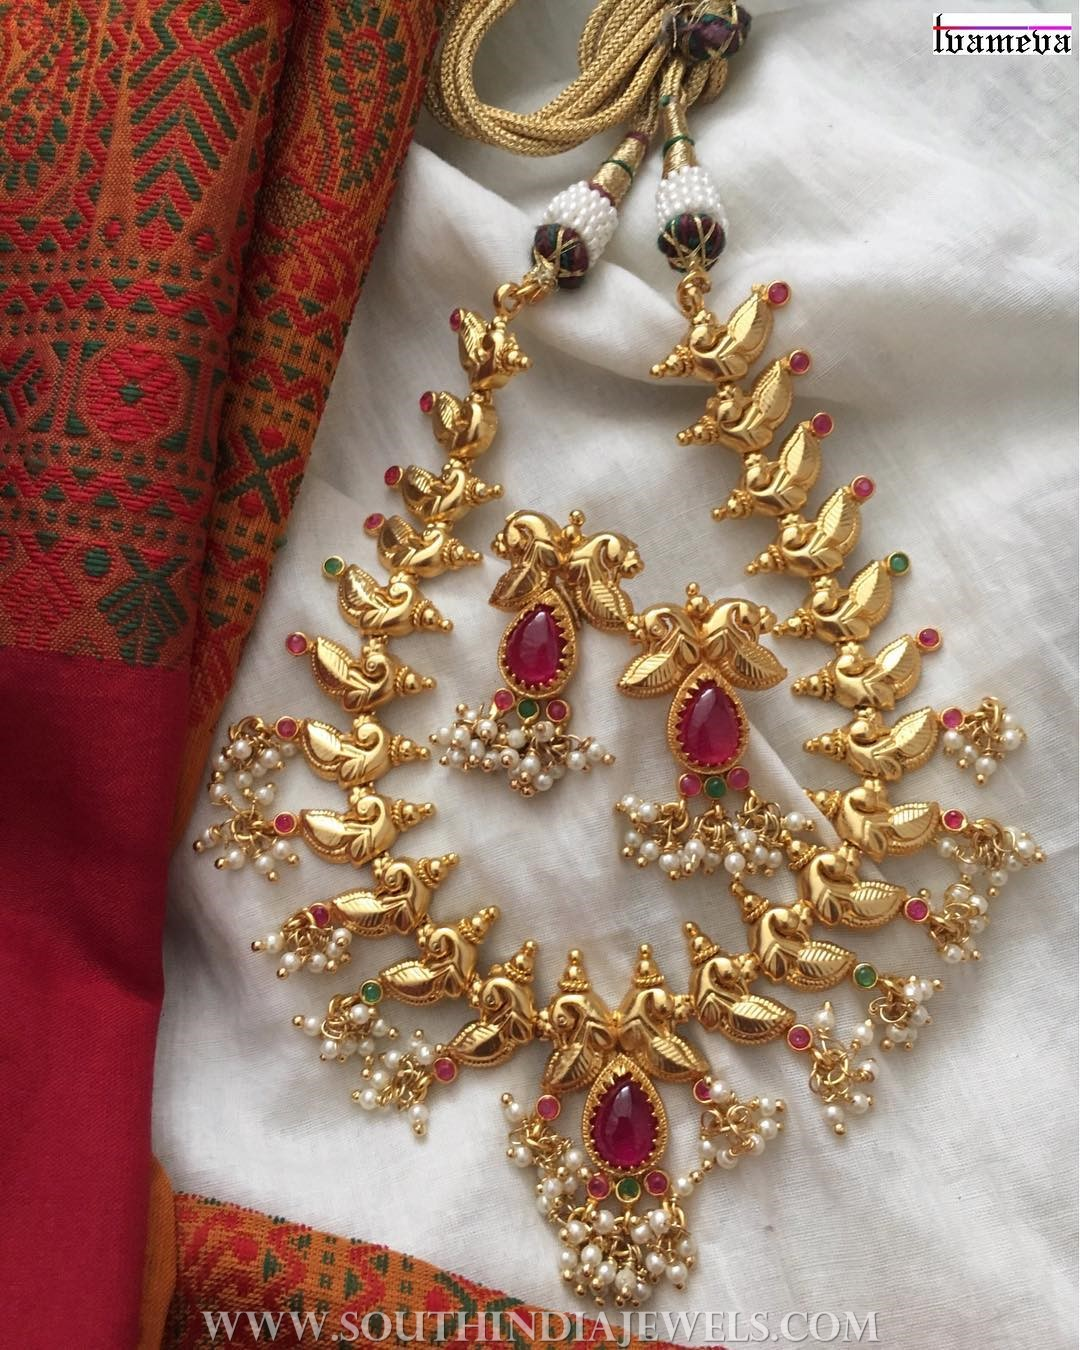 Gorgeous Gold Plated Necklace Set From Tvameva